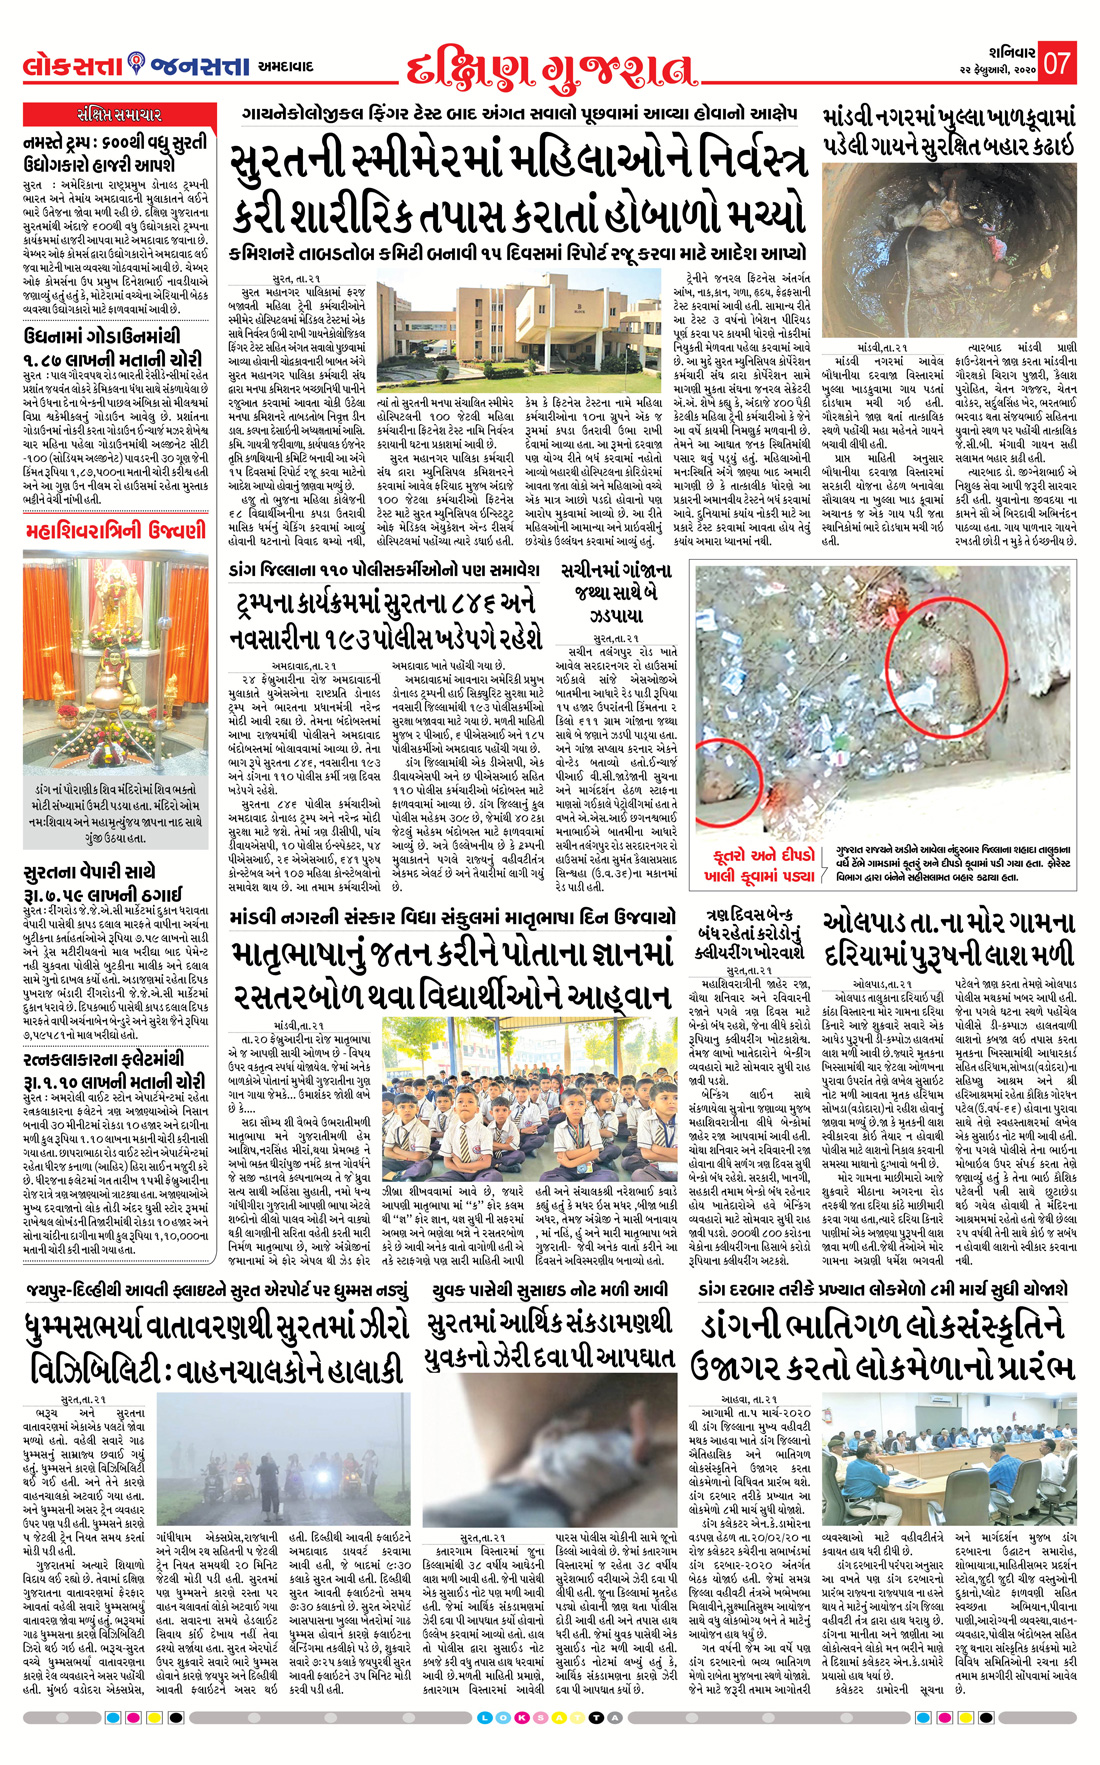 Loksatta Jansatta News Papaer E-paper dated 2020-02-22 | Page 7